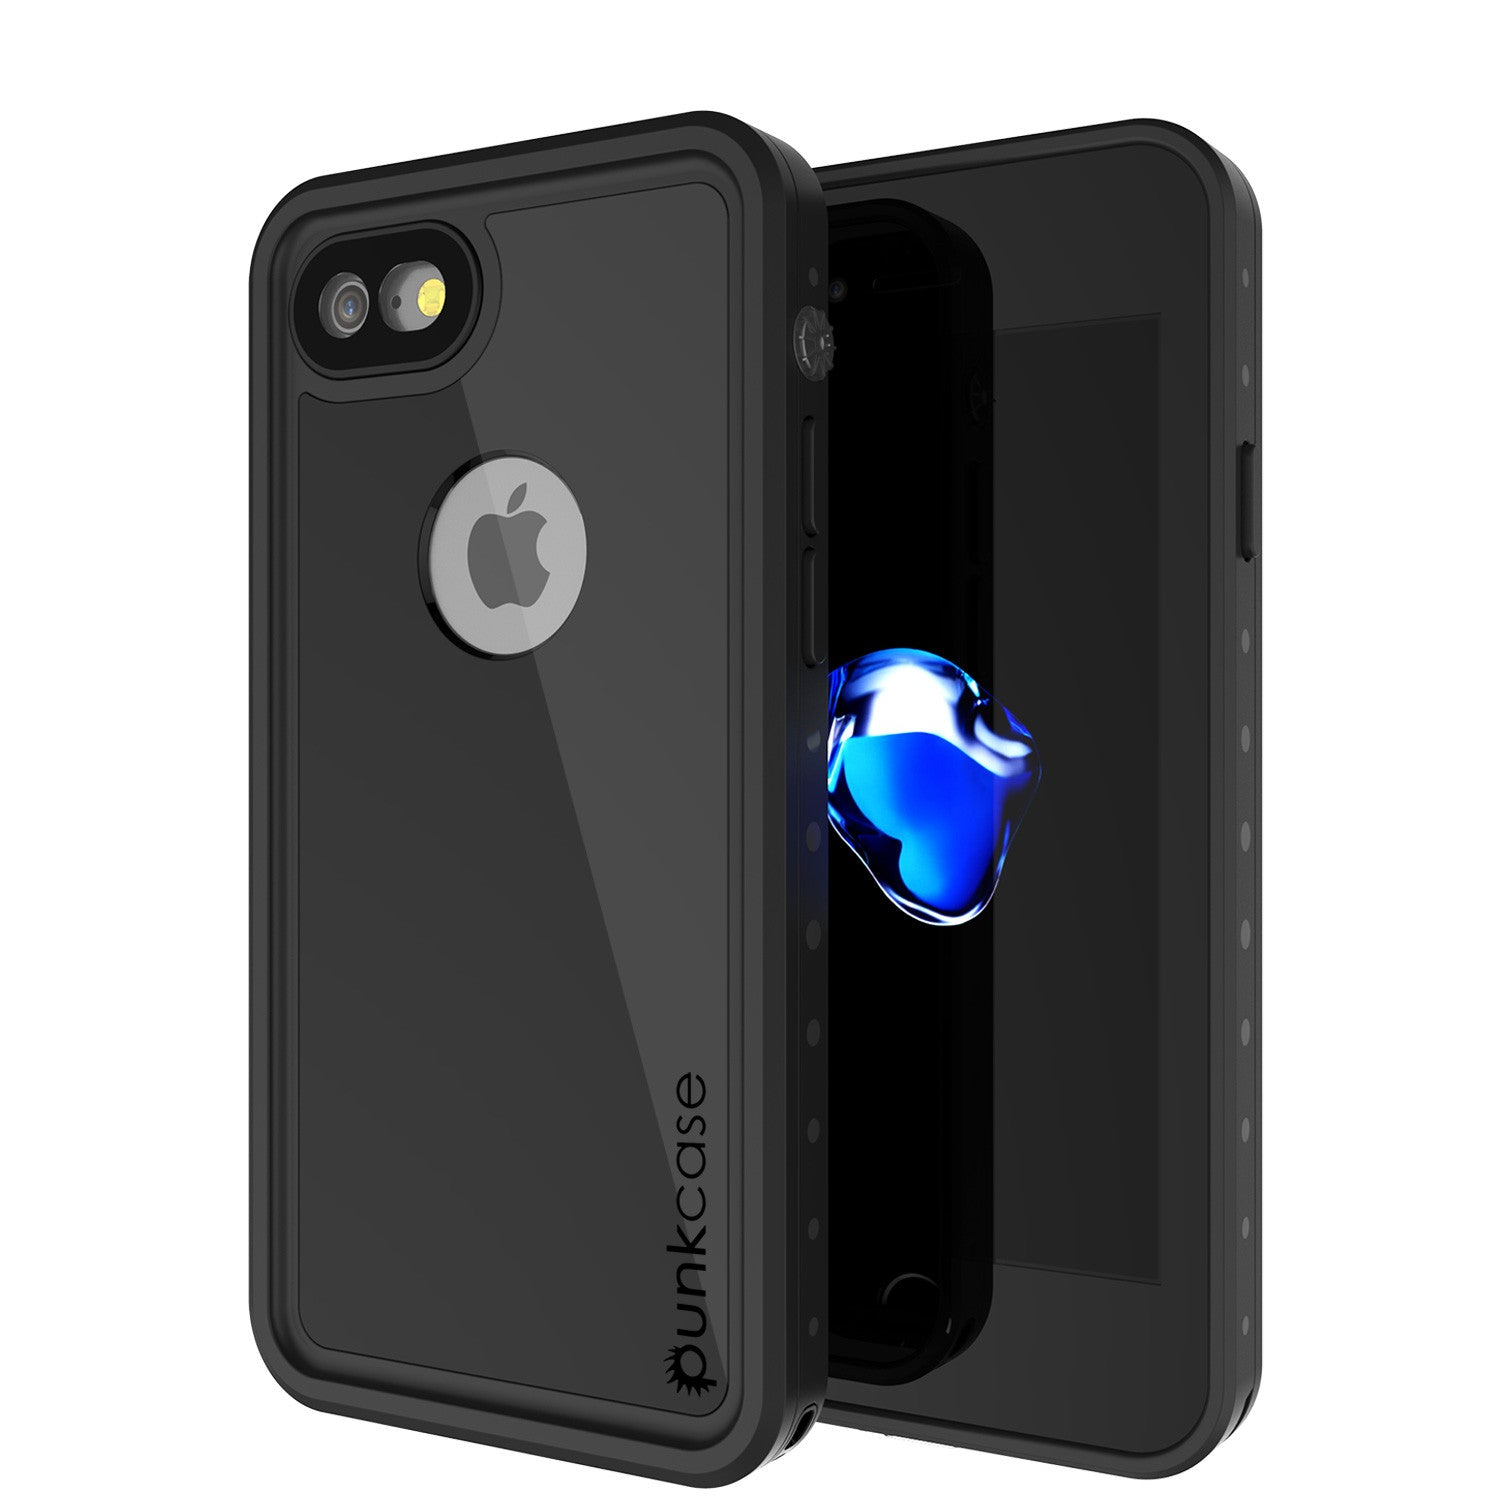 iPhone 7 Waterproof IP68 Case, Punkcase [Black] [StudStar Series] [Slim Fit] [Dirtproof] [Snowproof]